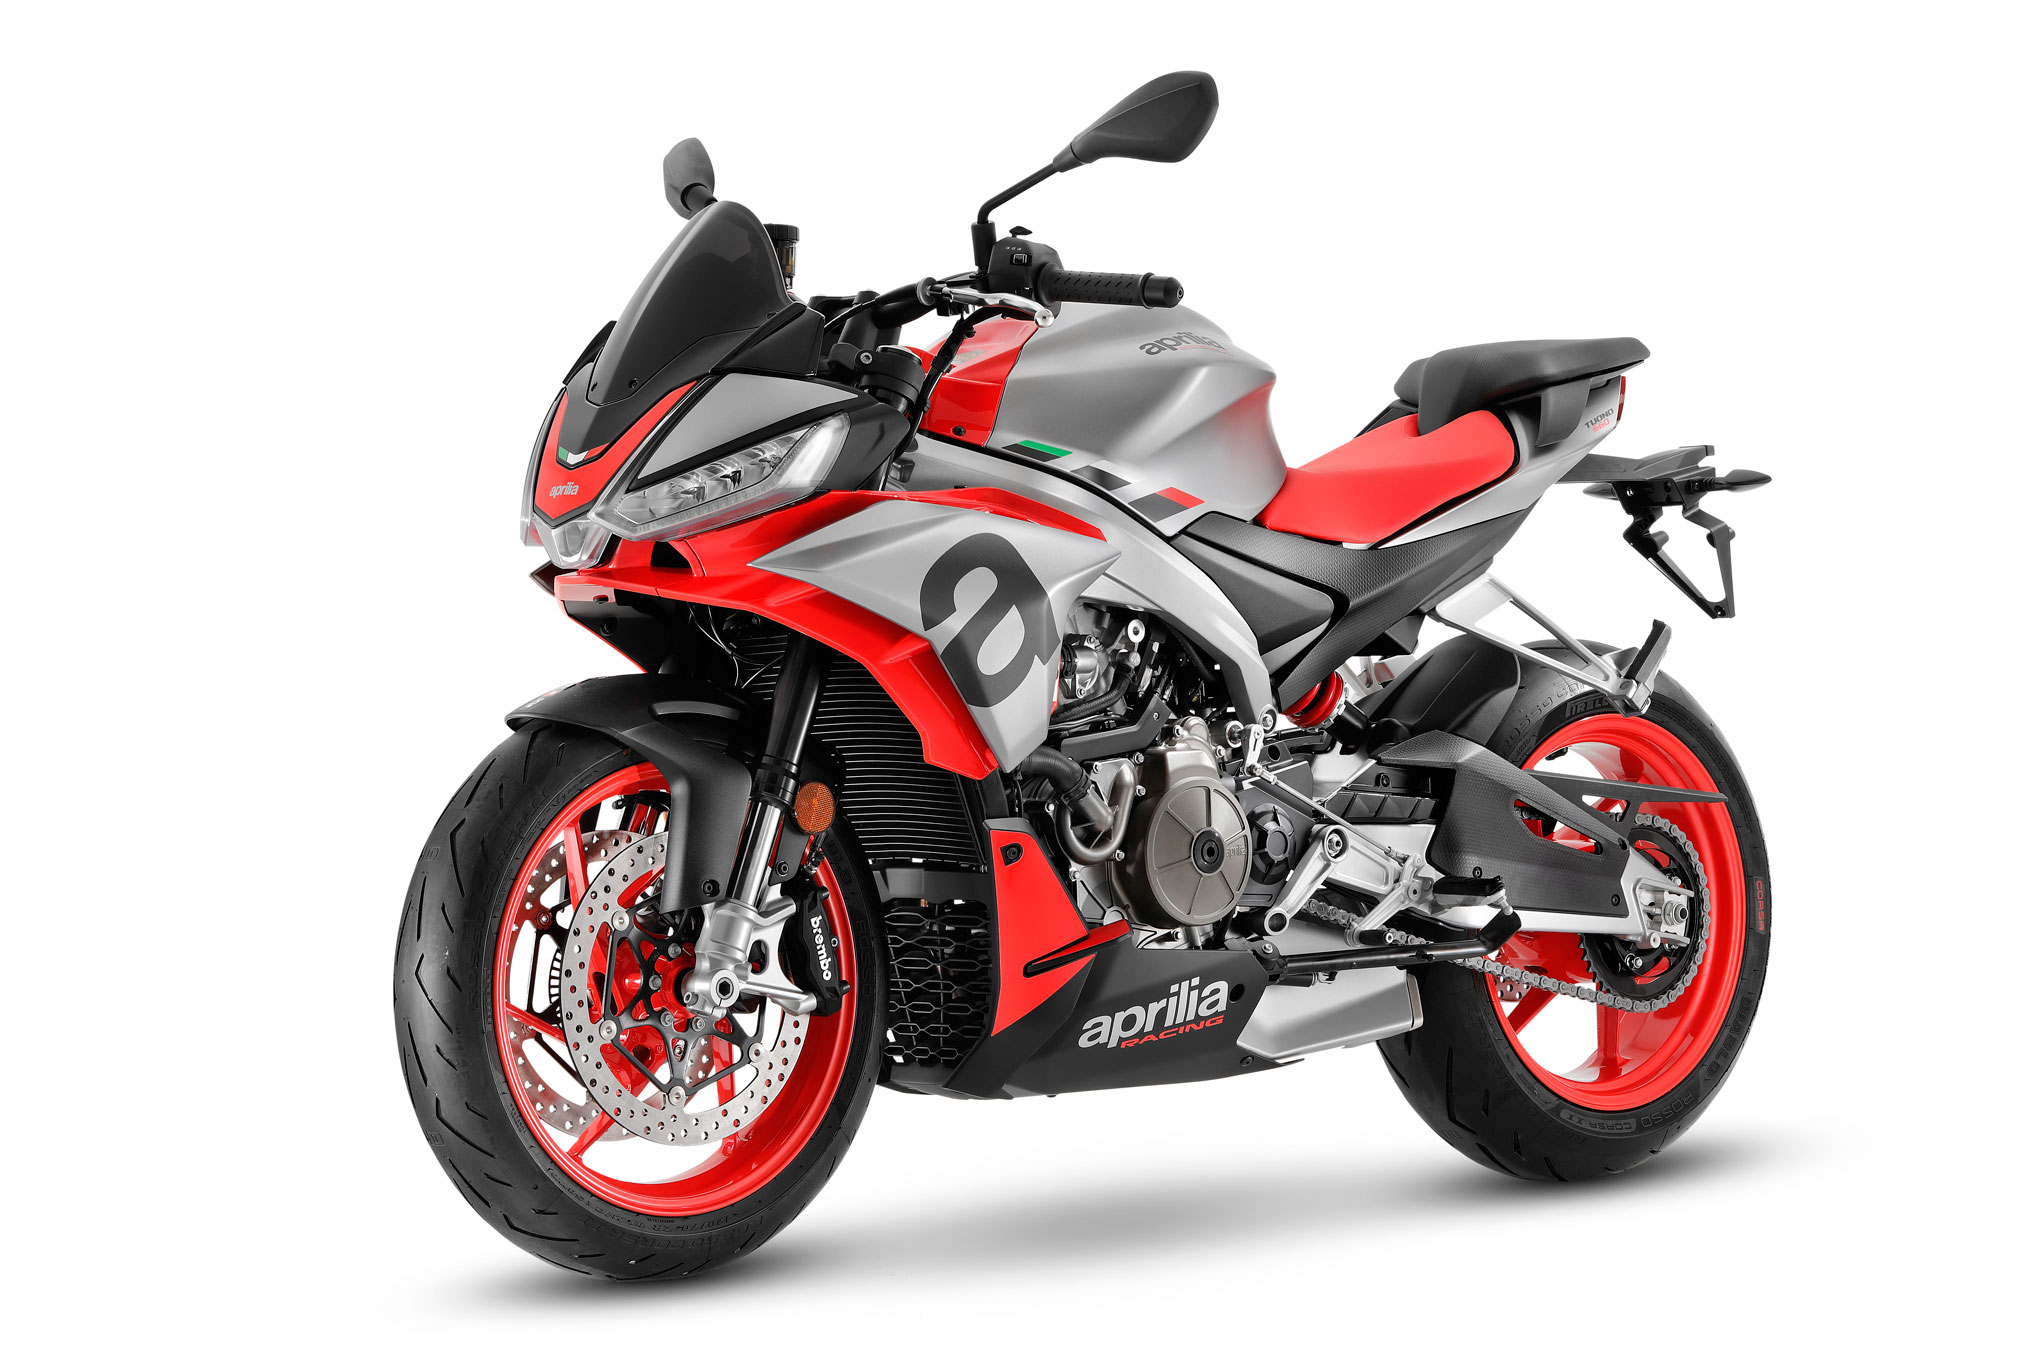 Aprilia Tuono 660 Concept Motorcycle First Look: Upright